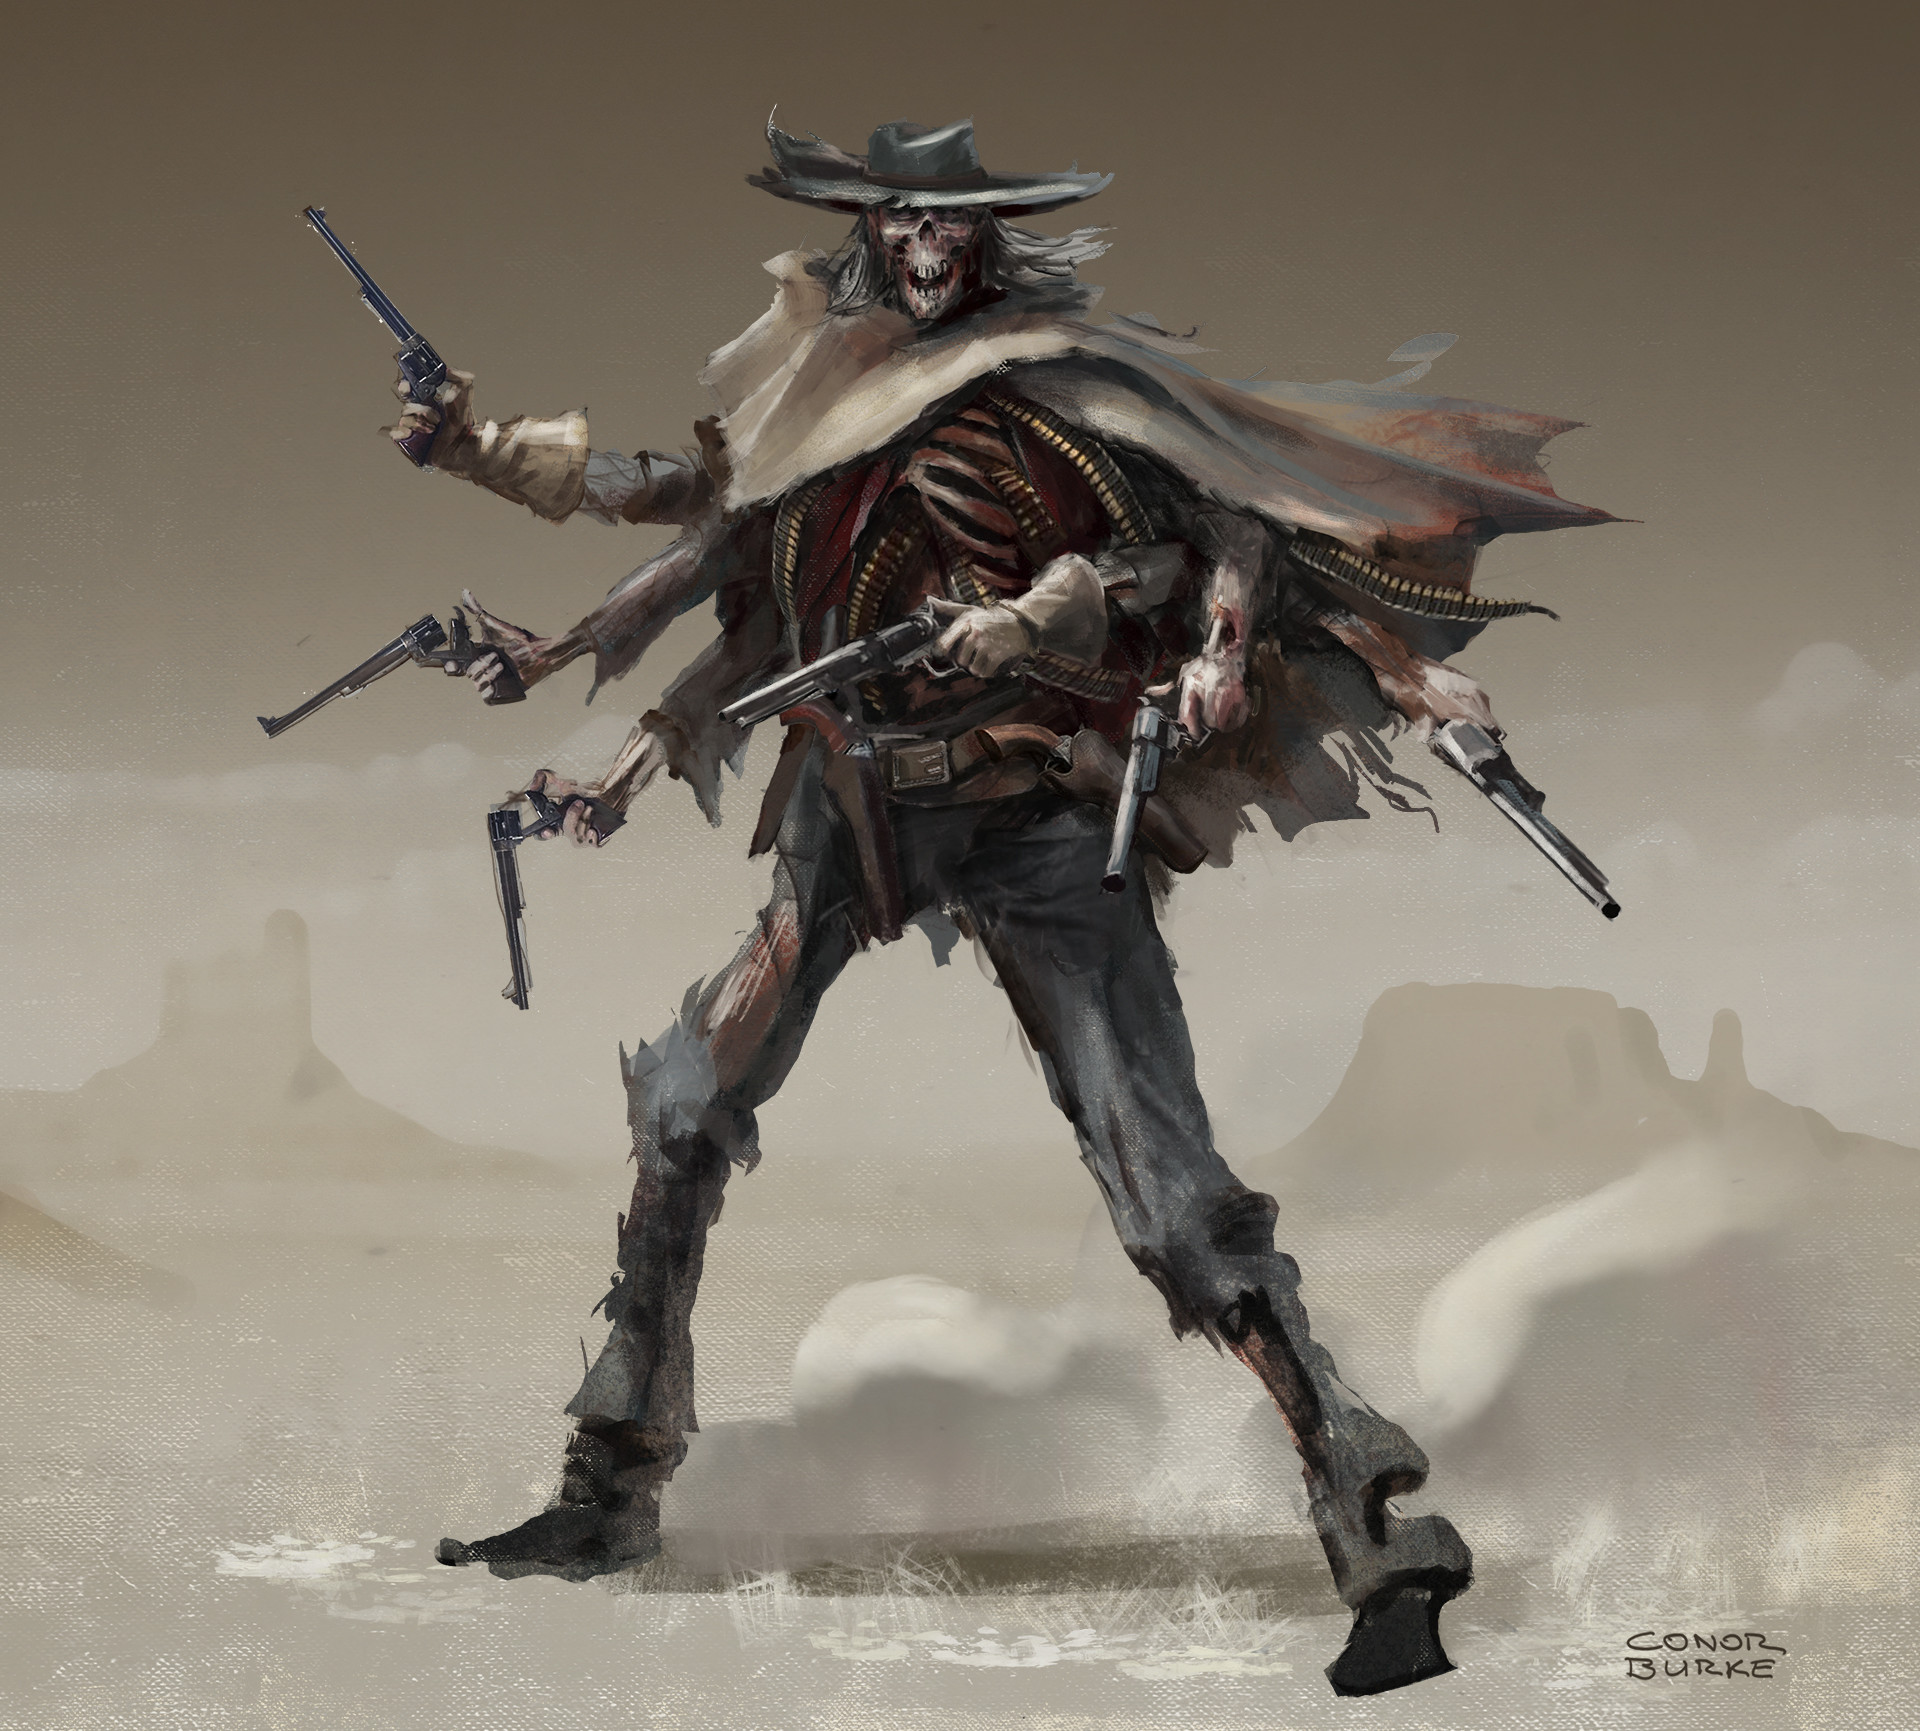 Wild West Challenge - The Good, the Bad and the Undead